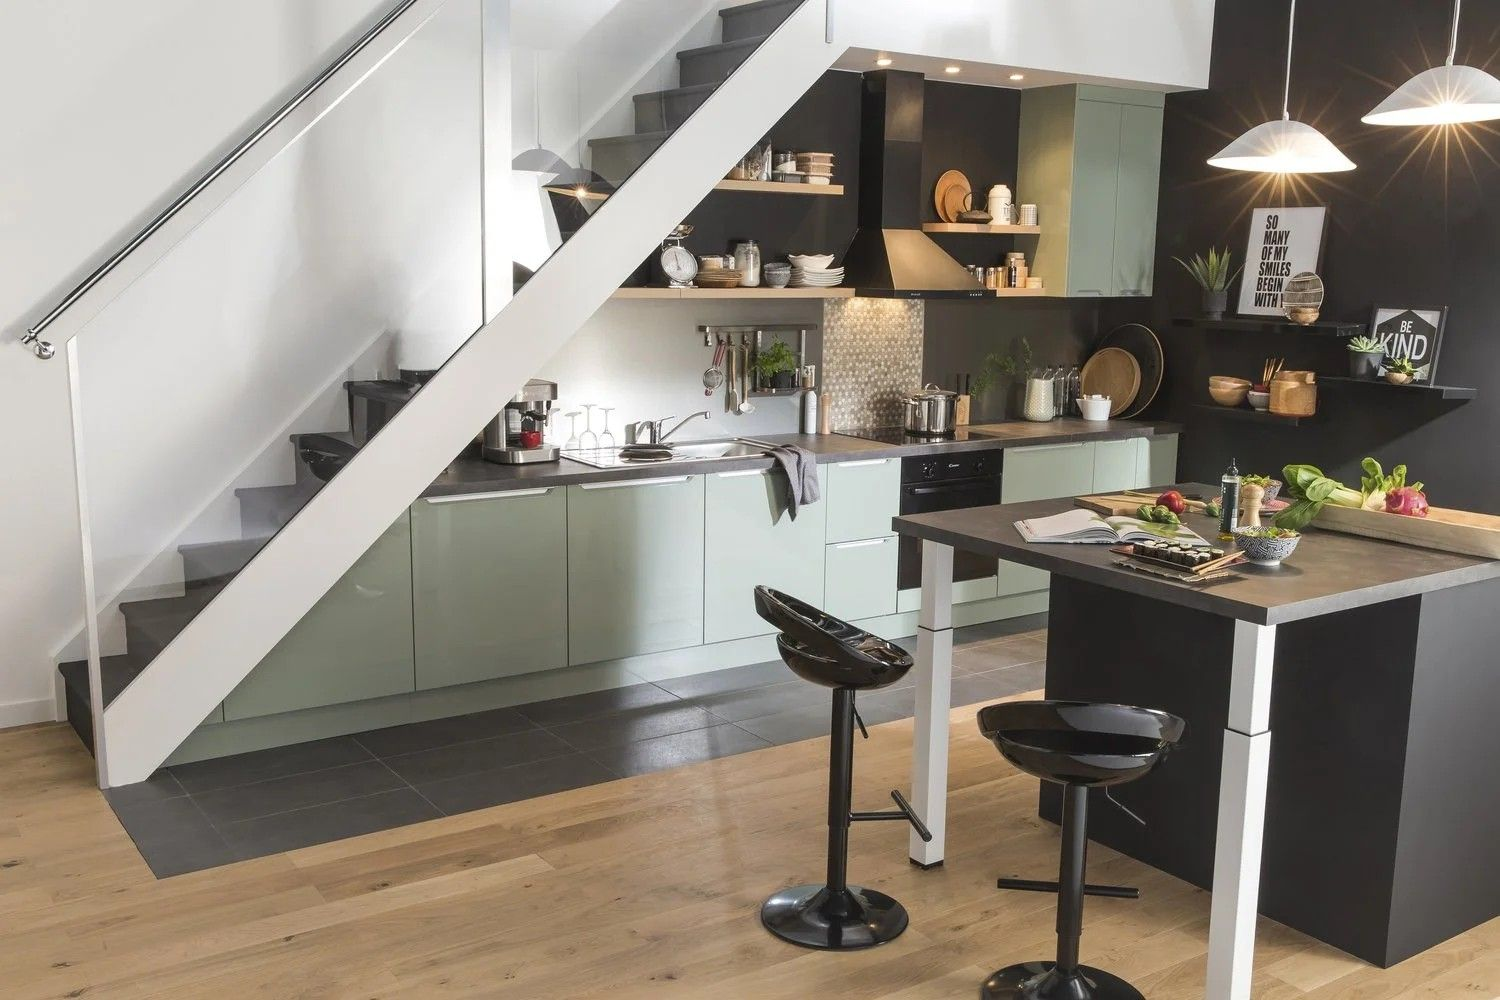 pin by morgan dixon on potential house in 2019 kitchen under stairs stairs in kitchen on kitchen under stairs id=89984